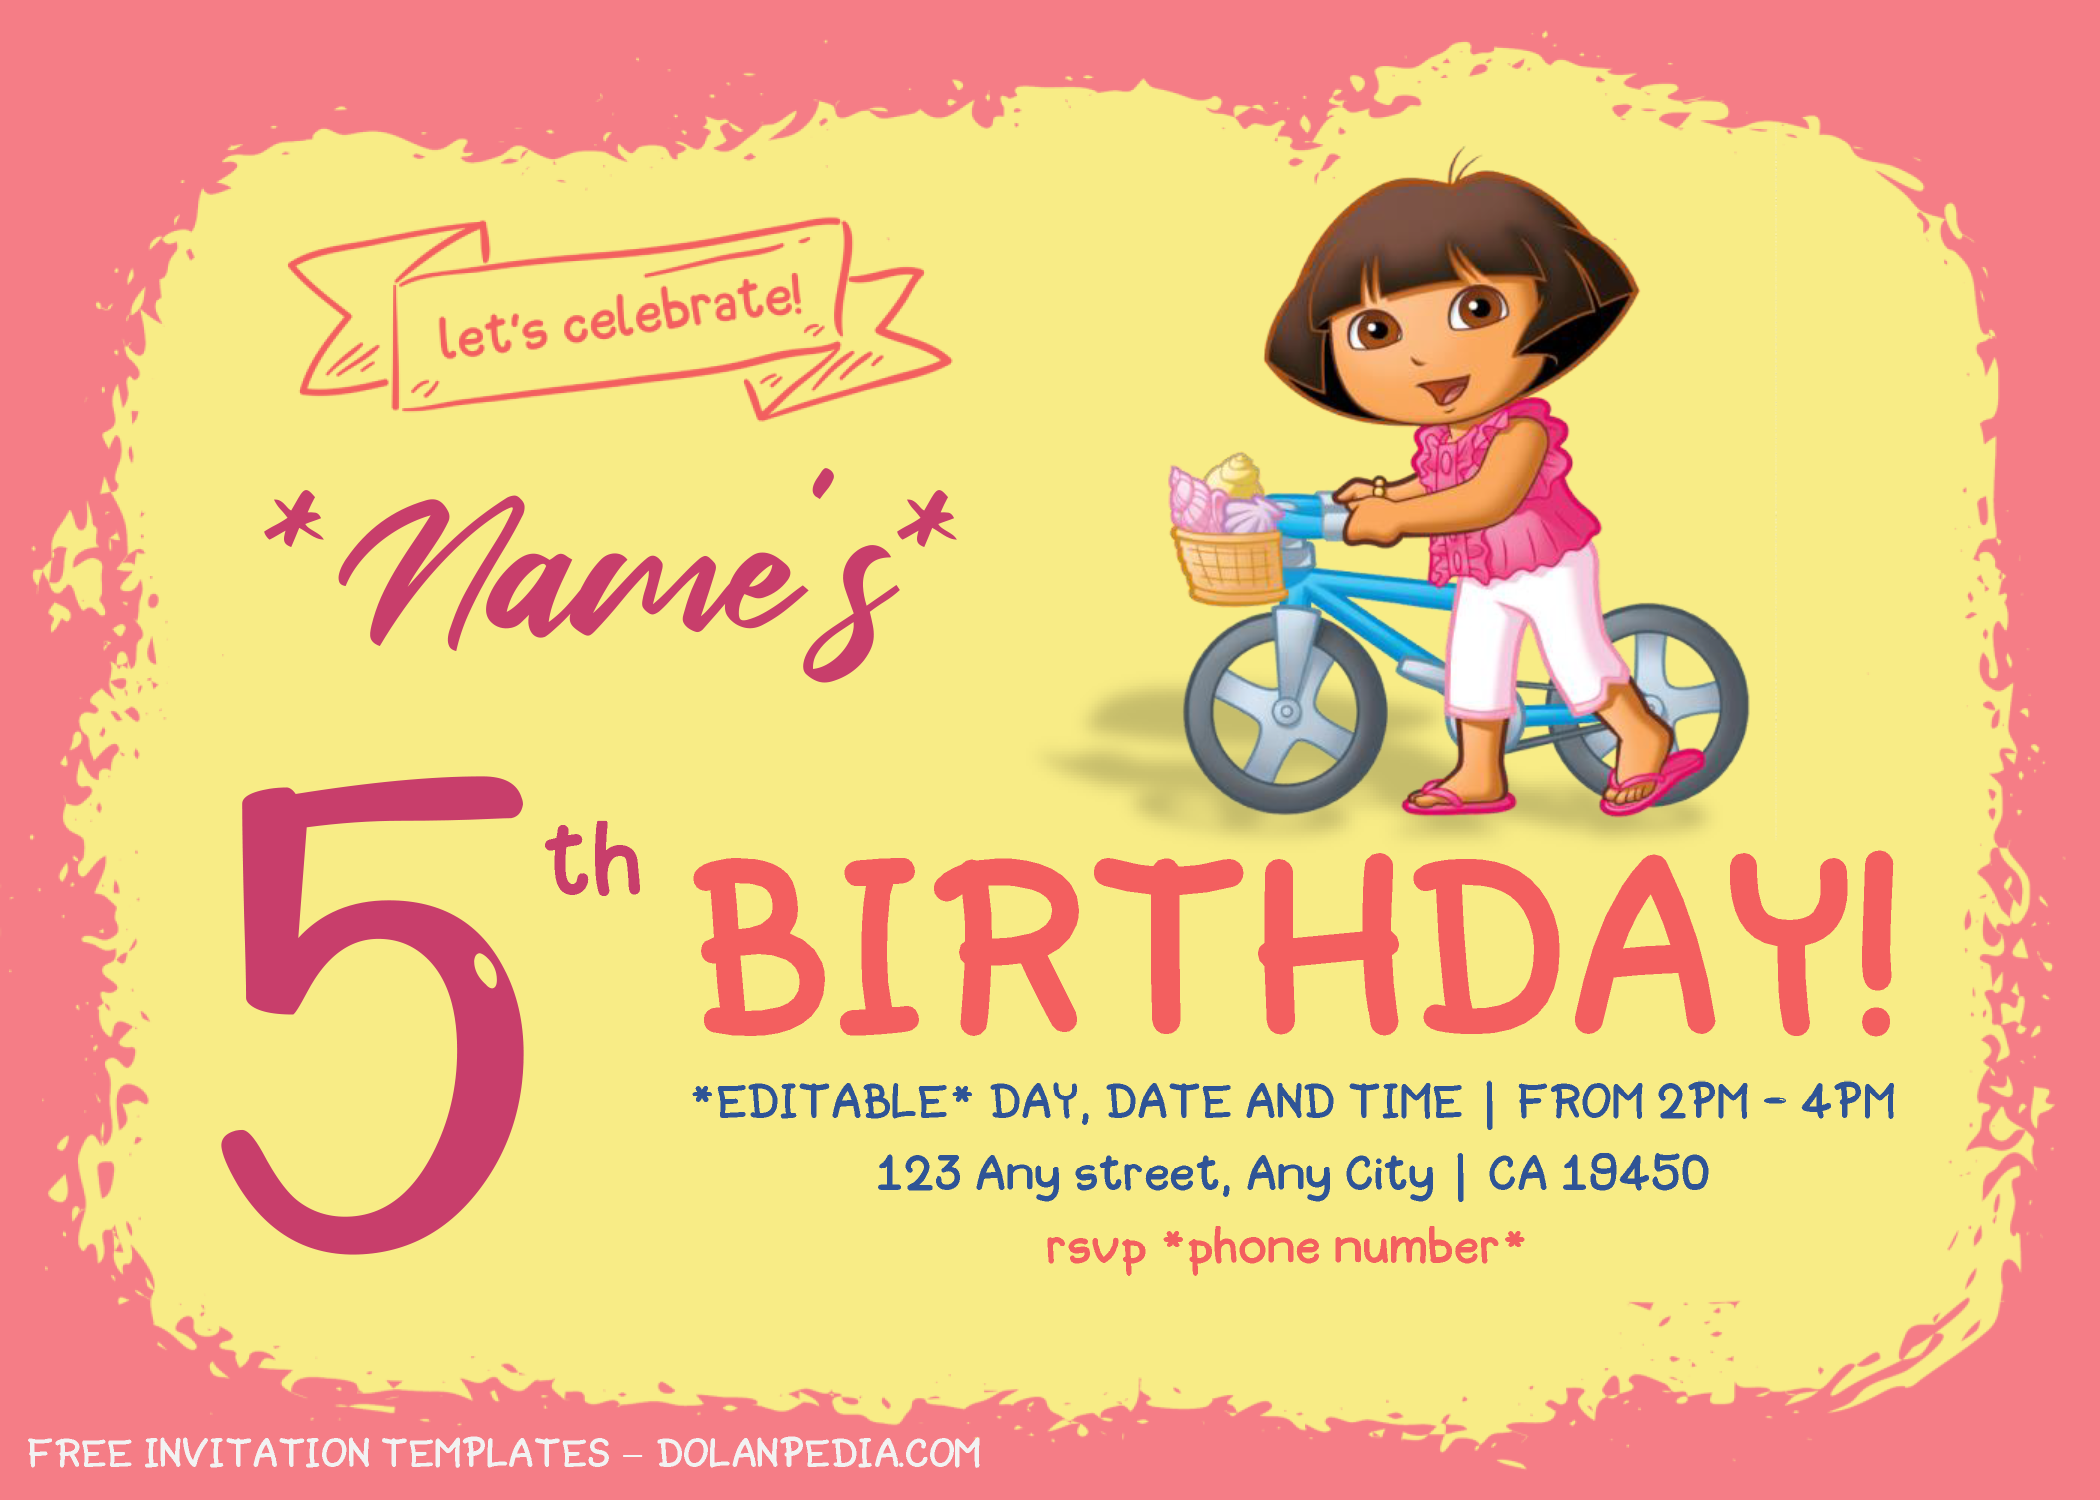 Dora The Explorer Birthday Invitation Templates Editable With Microsoft Word In 2020 Birthday Invitation Templates Invitation Template Birthday Invitations